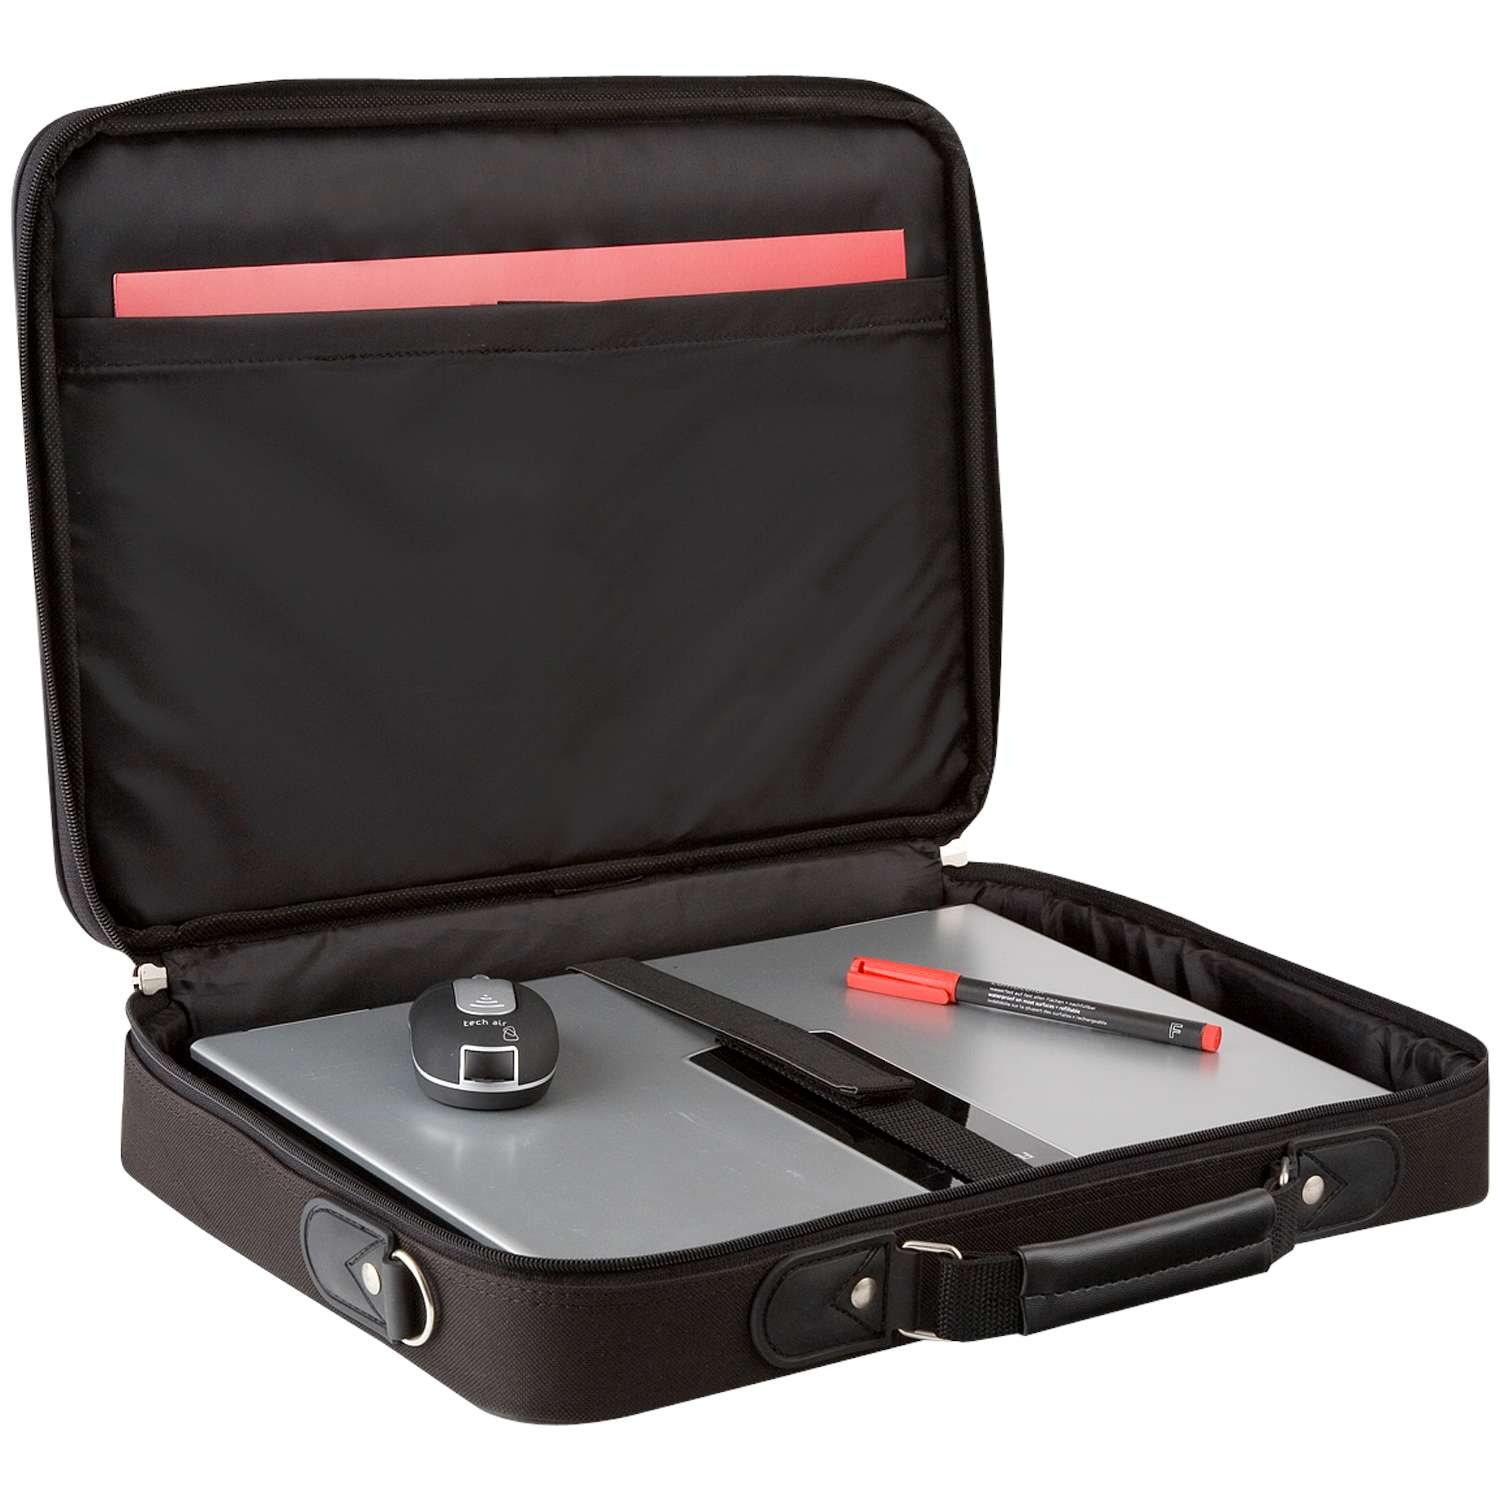 "computer? Get prepared, with the Tech Air TABUN29M 15.6"" Laptop Case"